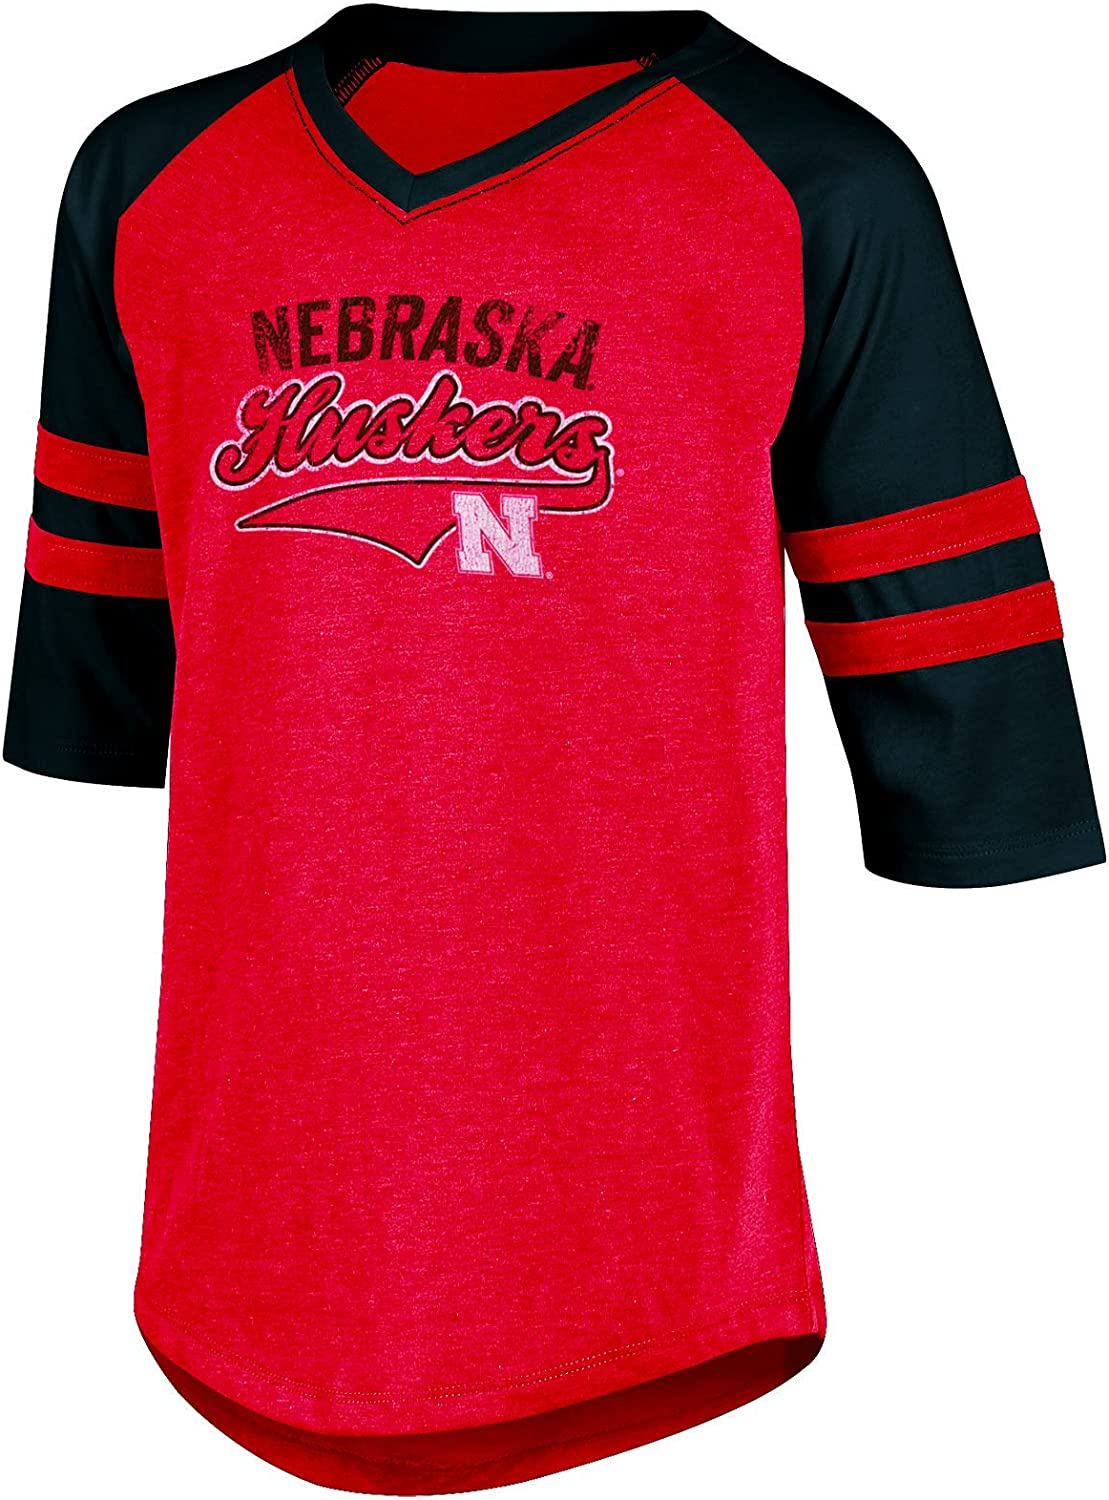 X-Large Champion NCAA Nebraska Cornhuskers Girls 3//4 Raglan Sleeve V-Neck Tunic Tee with Sleeve Taping Red Heather